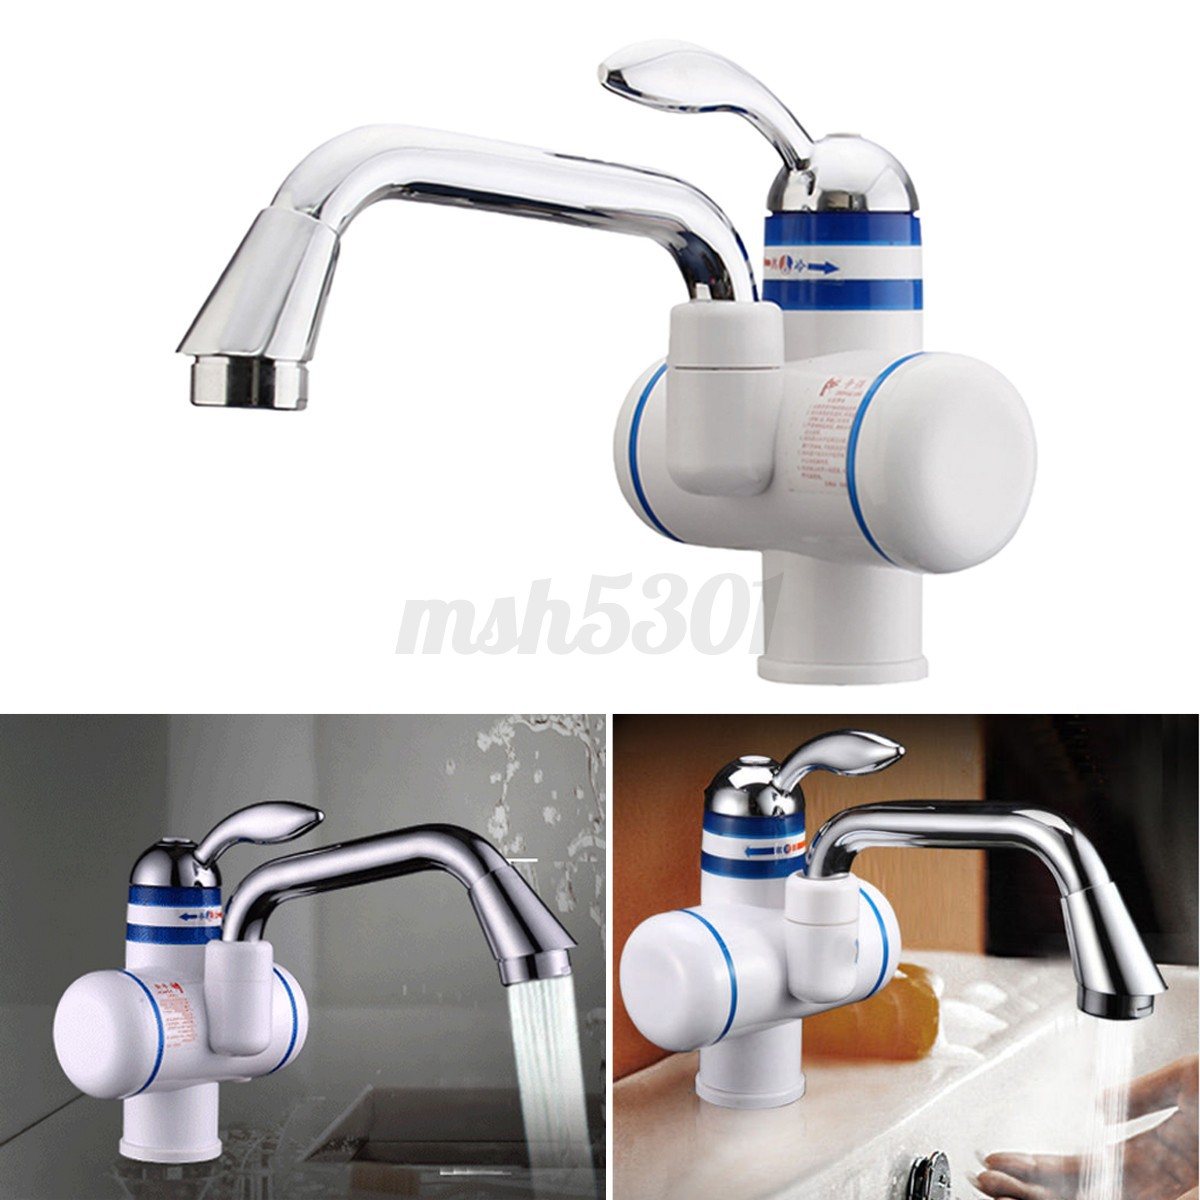 Bathroom sink faucet one hole double handle basin mixer tap ebay - Image Is Loading Instant Electric Hot Water Heater Faucet Bathroom Kitchen